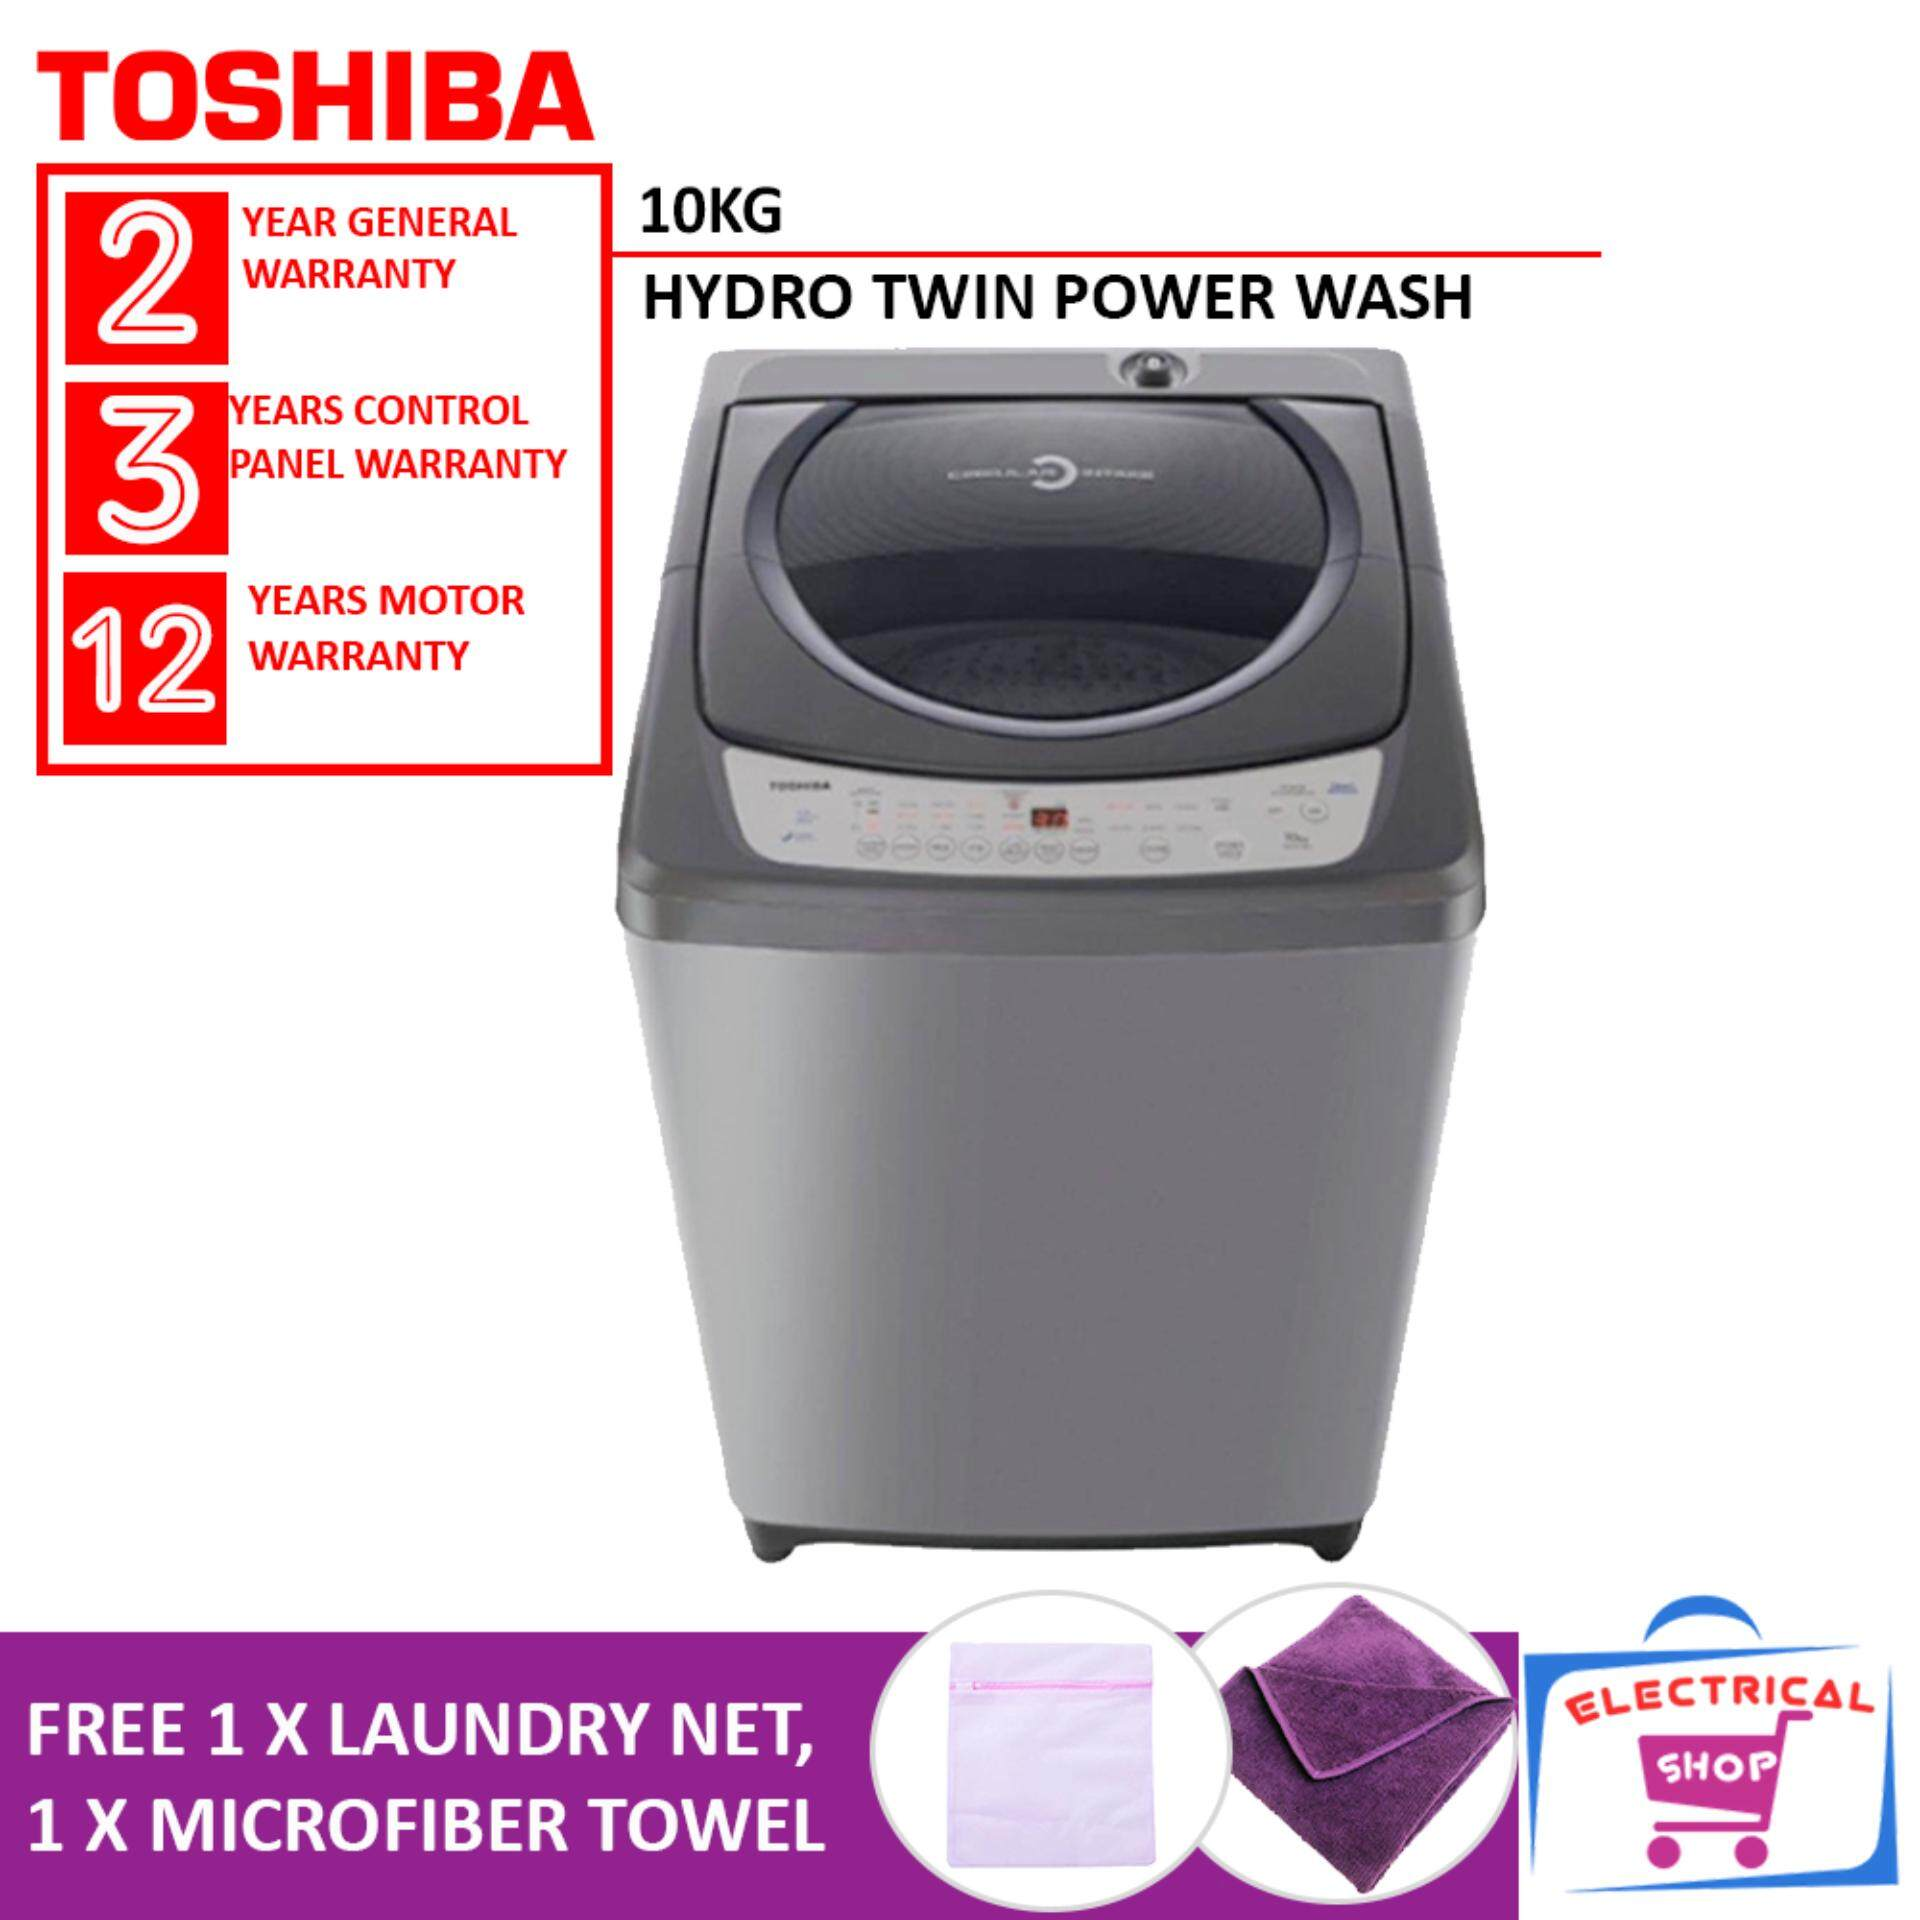 Toshiba Washer AW-H1100GM 10kg Top Load Circular Air Intake AWH1100GM Washing Machine (Free Laundry Net + Microfiber Towel)